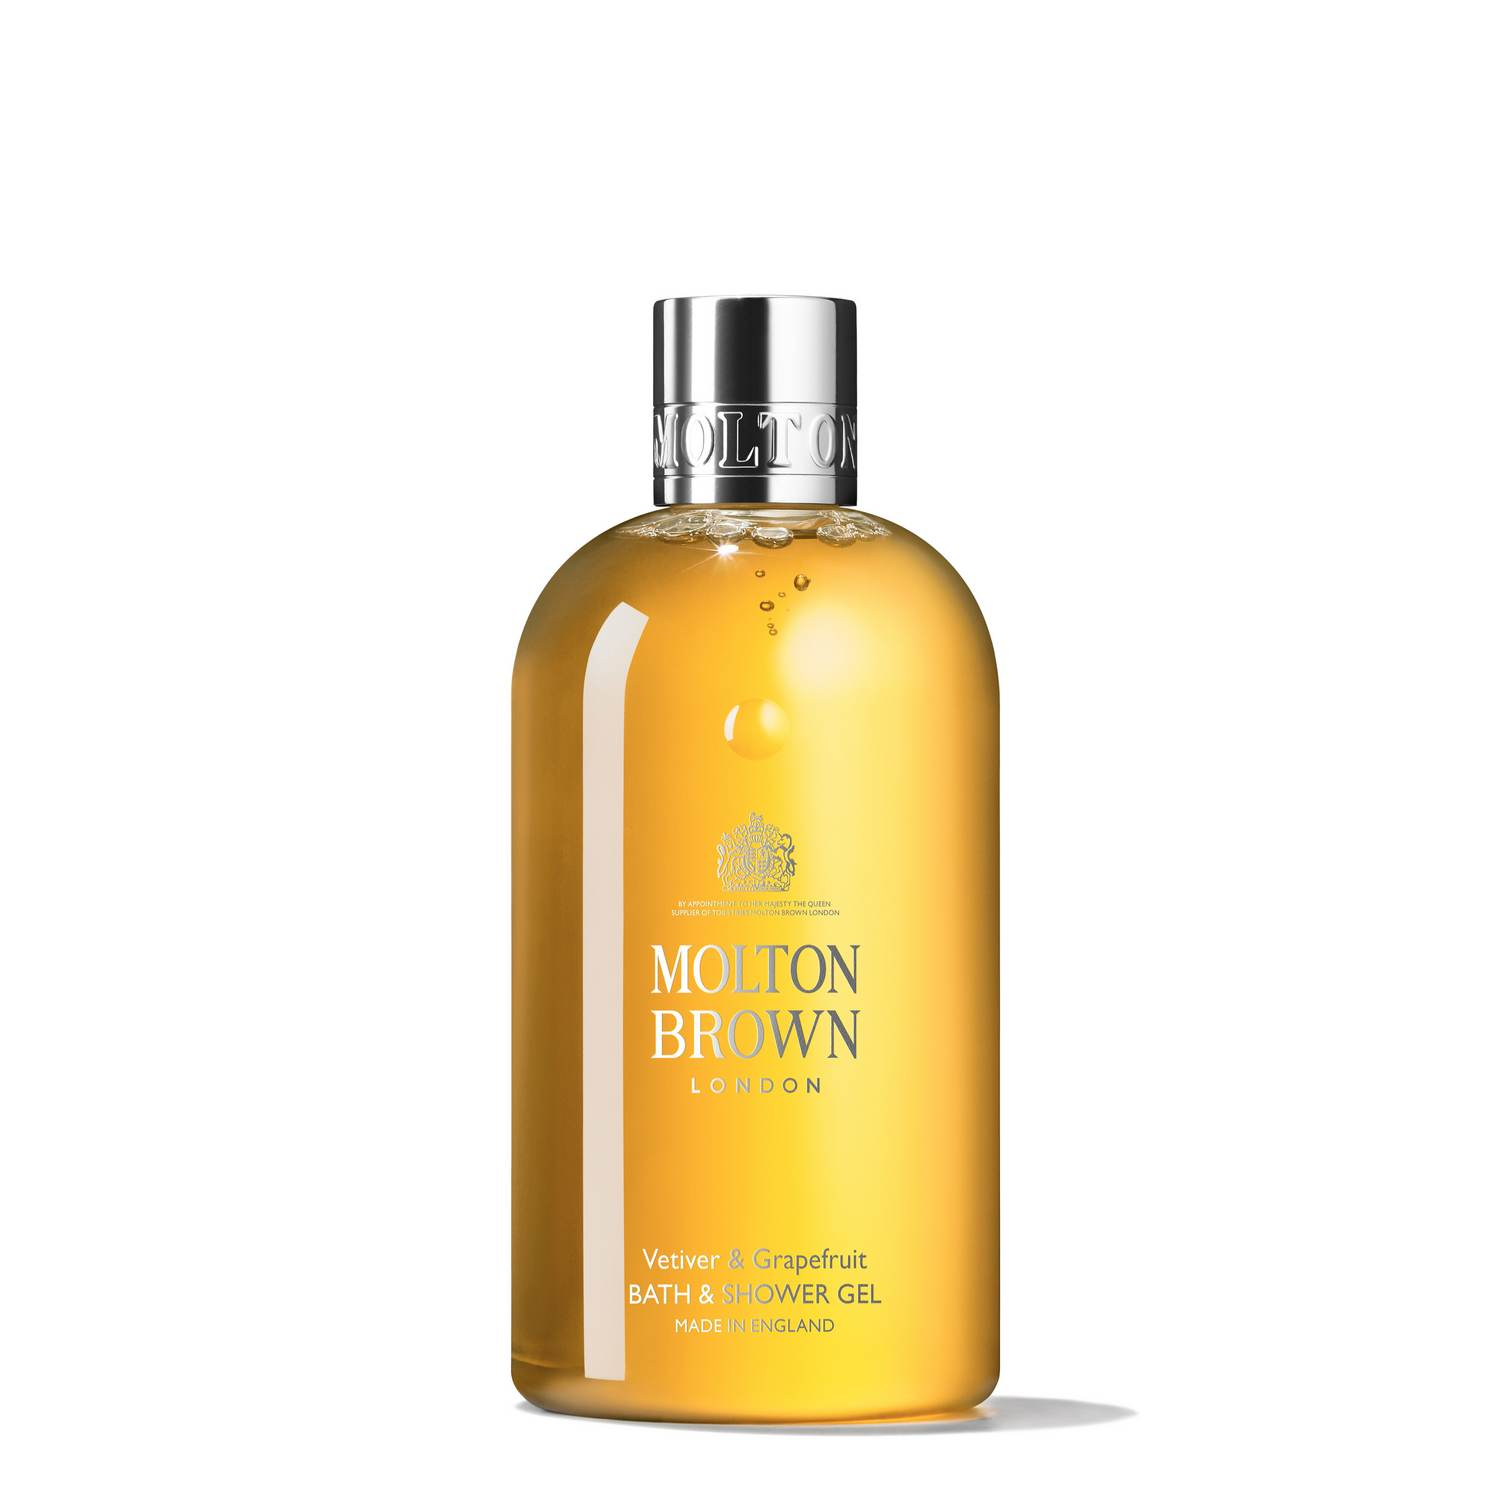 Molton Brown Vetiver and Grapefruit Bath and Shower Gel